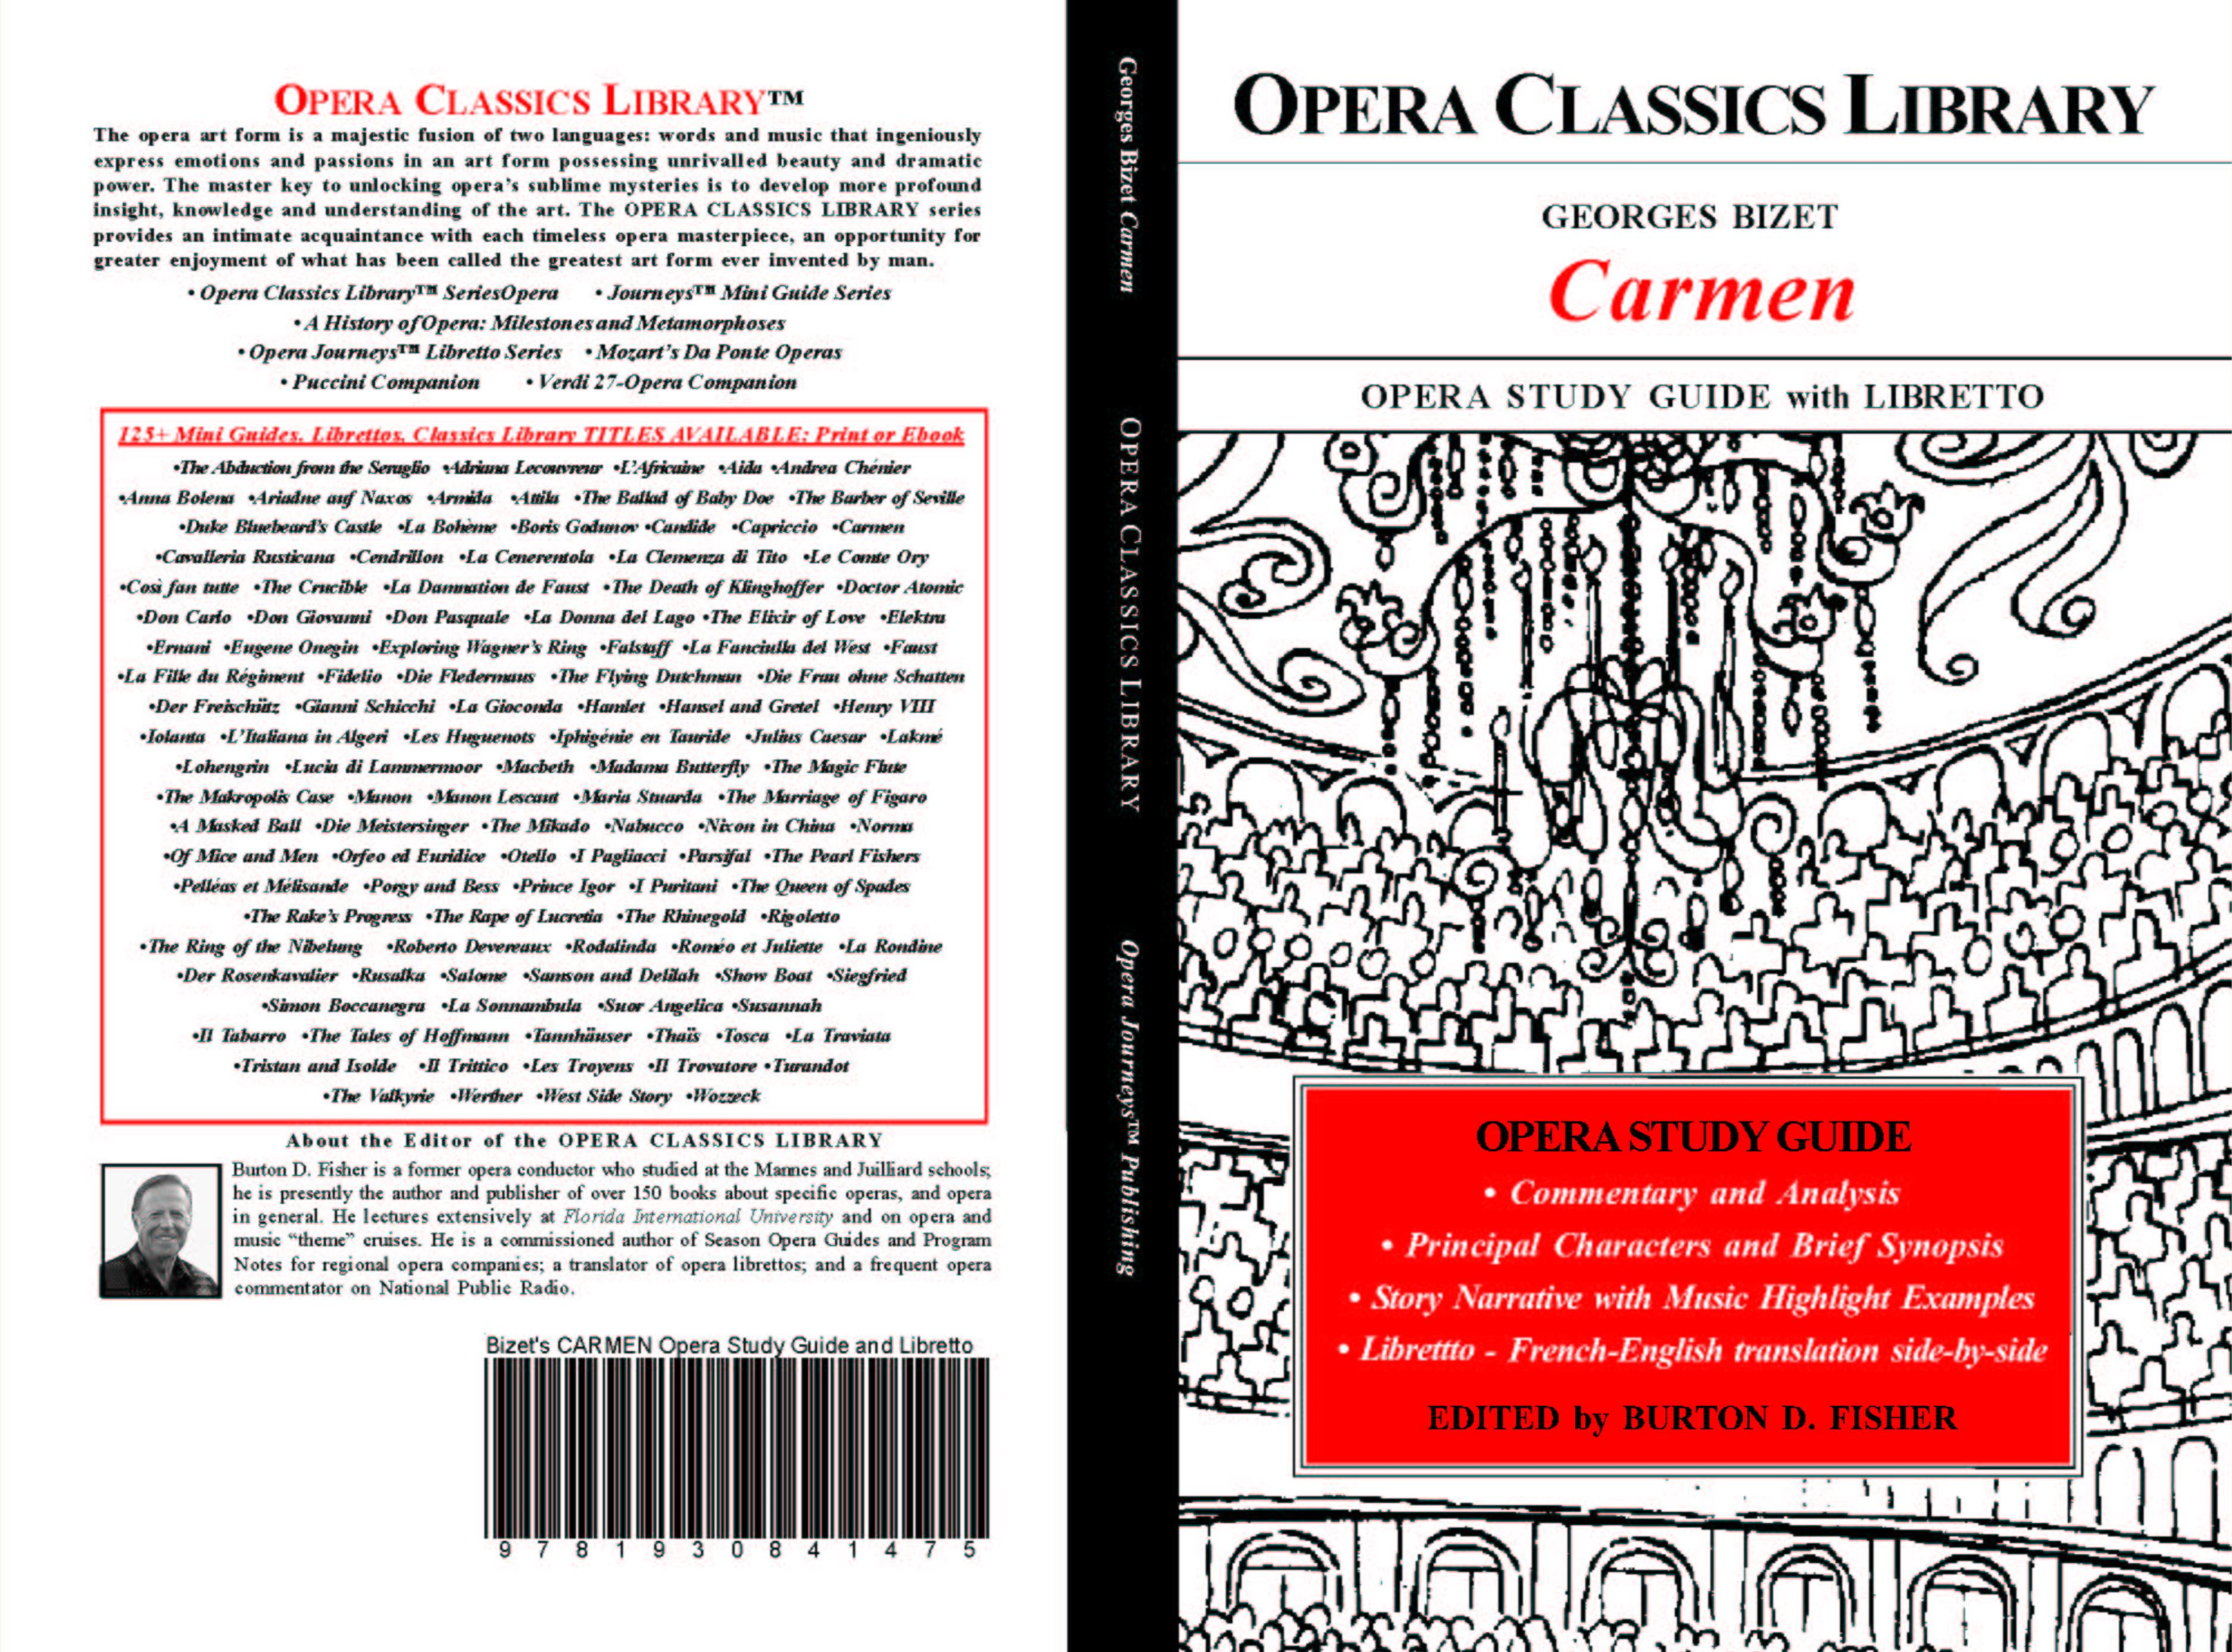 George Bizet CARMEN Opera Study Guide with Libretto cover image